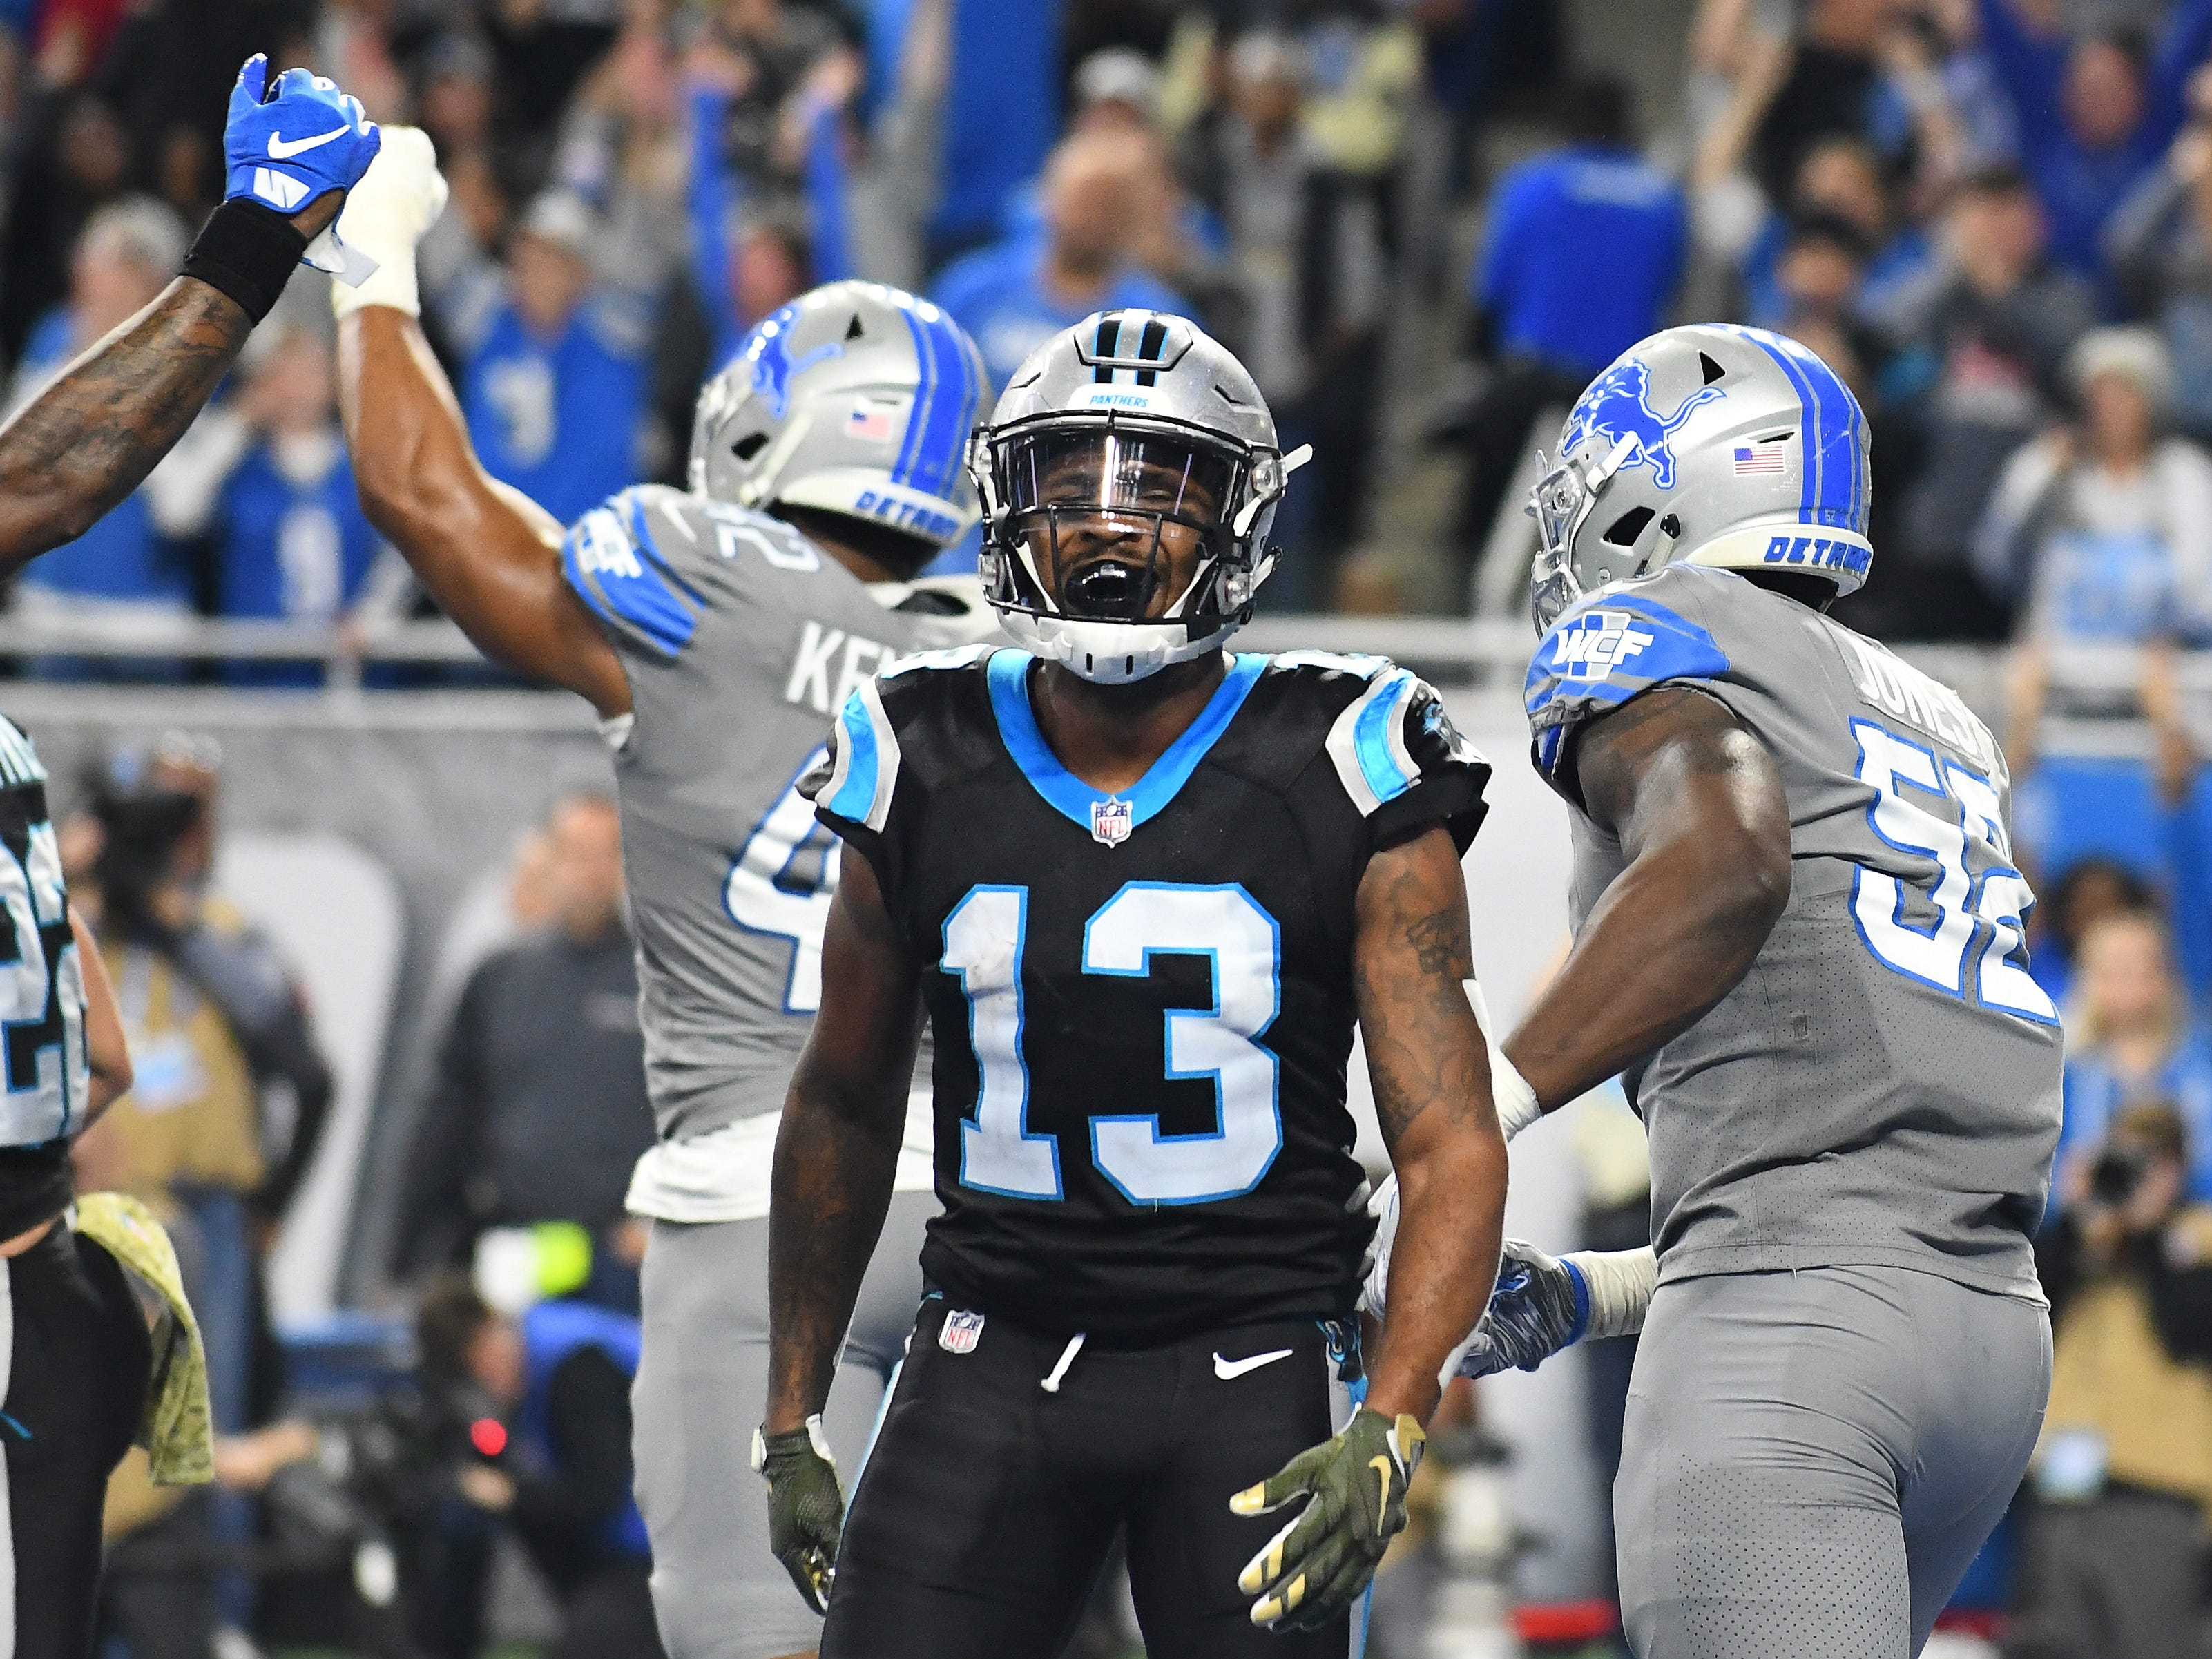 Panthers wide receiver Jarius Wright lets out a yell after not being able to pull down a high pass in the end zone on a two point conversion that would of put Carolina ahead with a minute to go in the fourth quarter.